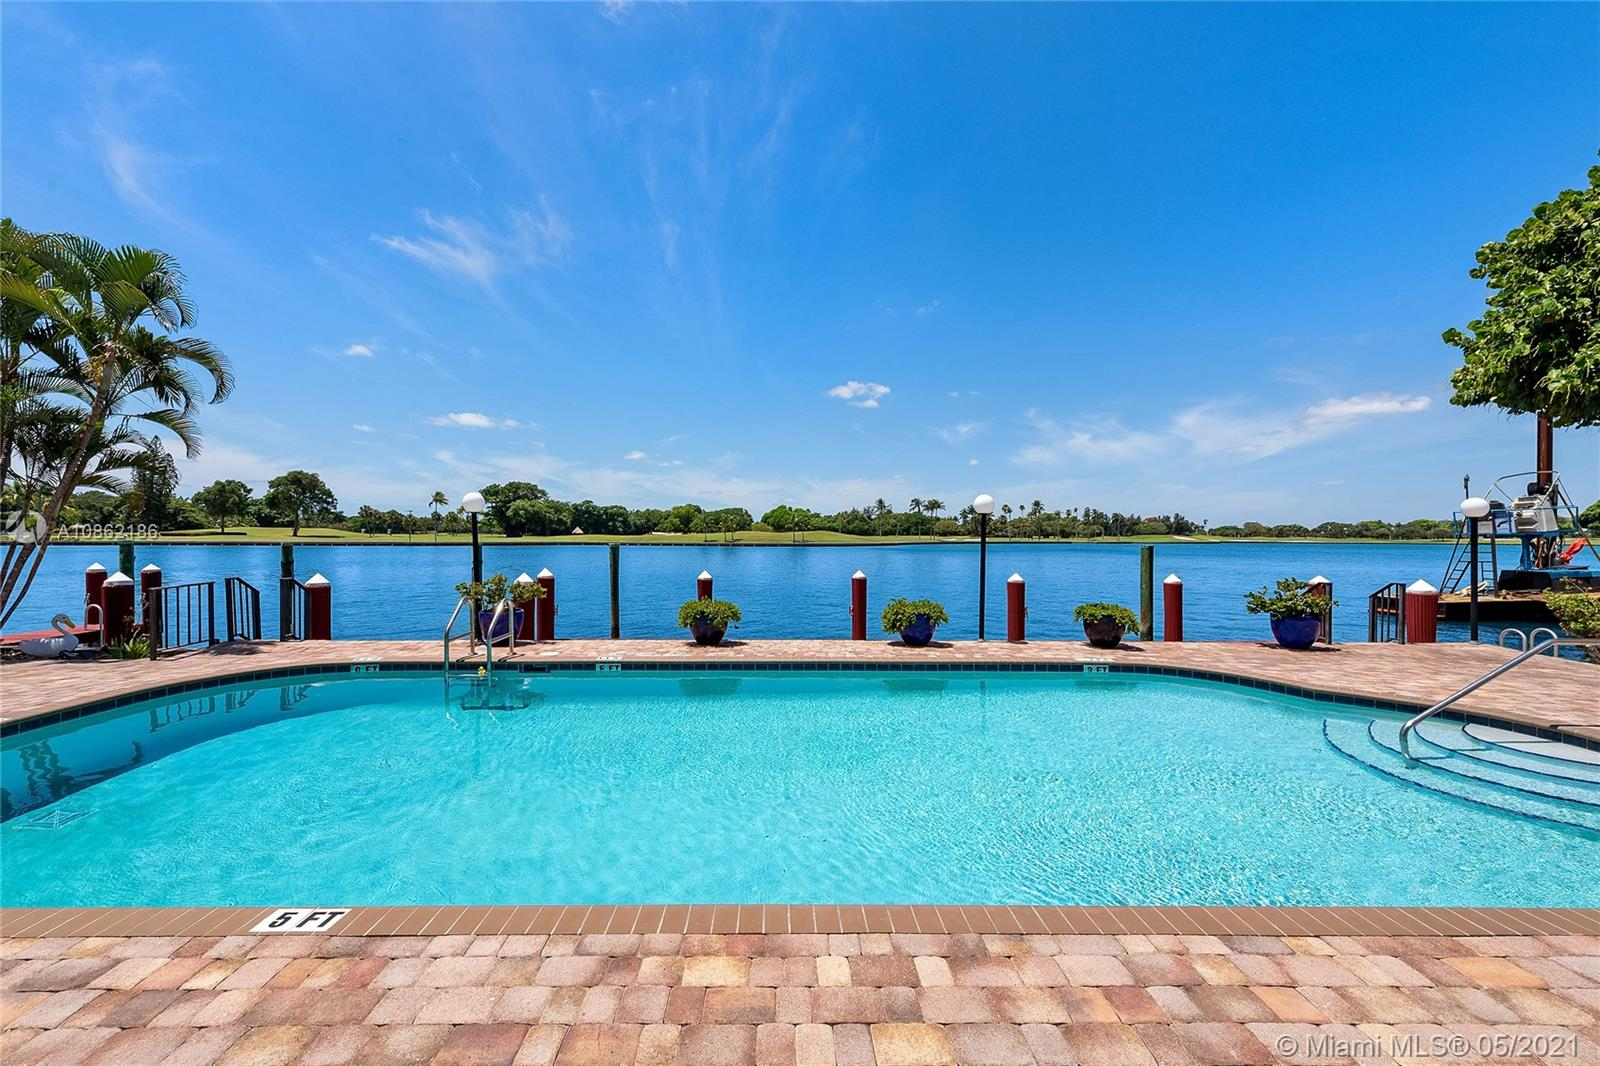 For only the second time in 6 years, a stunning bay view residence has become available in the boutique Monterey property on Bay Harbor Islands. Only 18 owners can call this spot home with wide water and Indian Creek Golf Course views. Unit 3A boasts 2,103 square feet plus a 210 sq ft private lanai where you can watch for yachts, dolphins, and manatees. Impact windows! Current floor plan 2 bedroom 2.5 baths but can be remodeled into a spacious 3 bedroom. Freshly painted building passed 40 Year Inspection including new elevator and fire system. All the elements of a home are available with the convenience of a condo: Dock avail, climate controlled storage room, salt water pool, billiards, sauna, paddleboard, kayak, bike storage! 2 parking spots Maintenance $841 or 40 cents/SqFt. No Renting